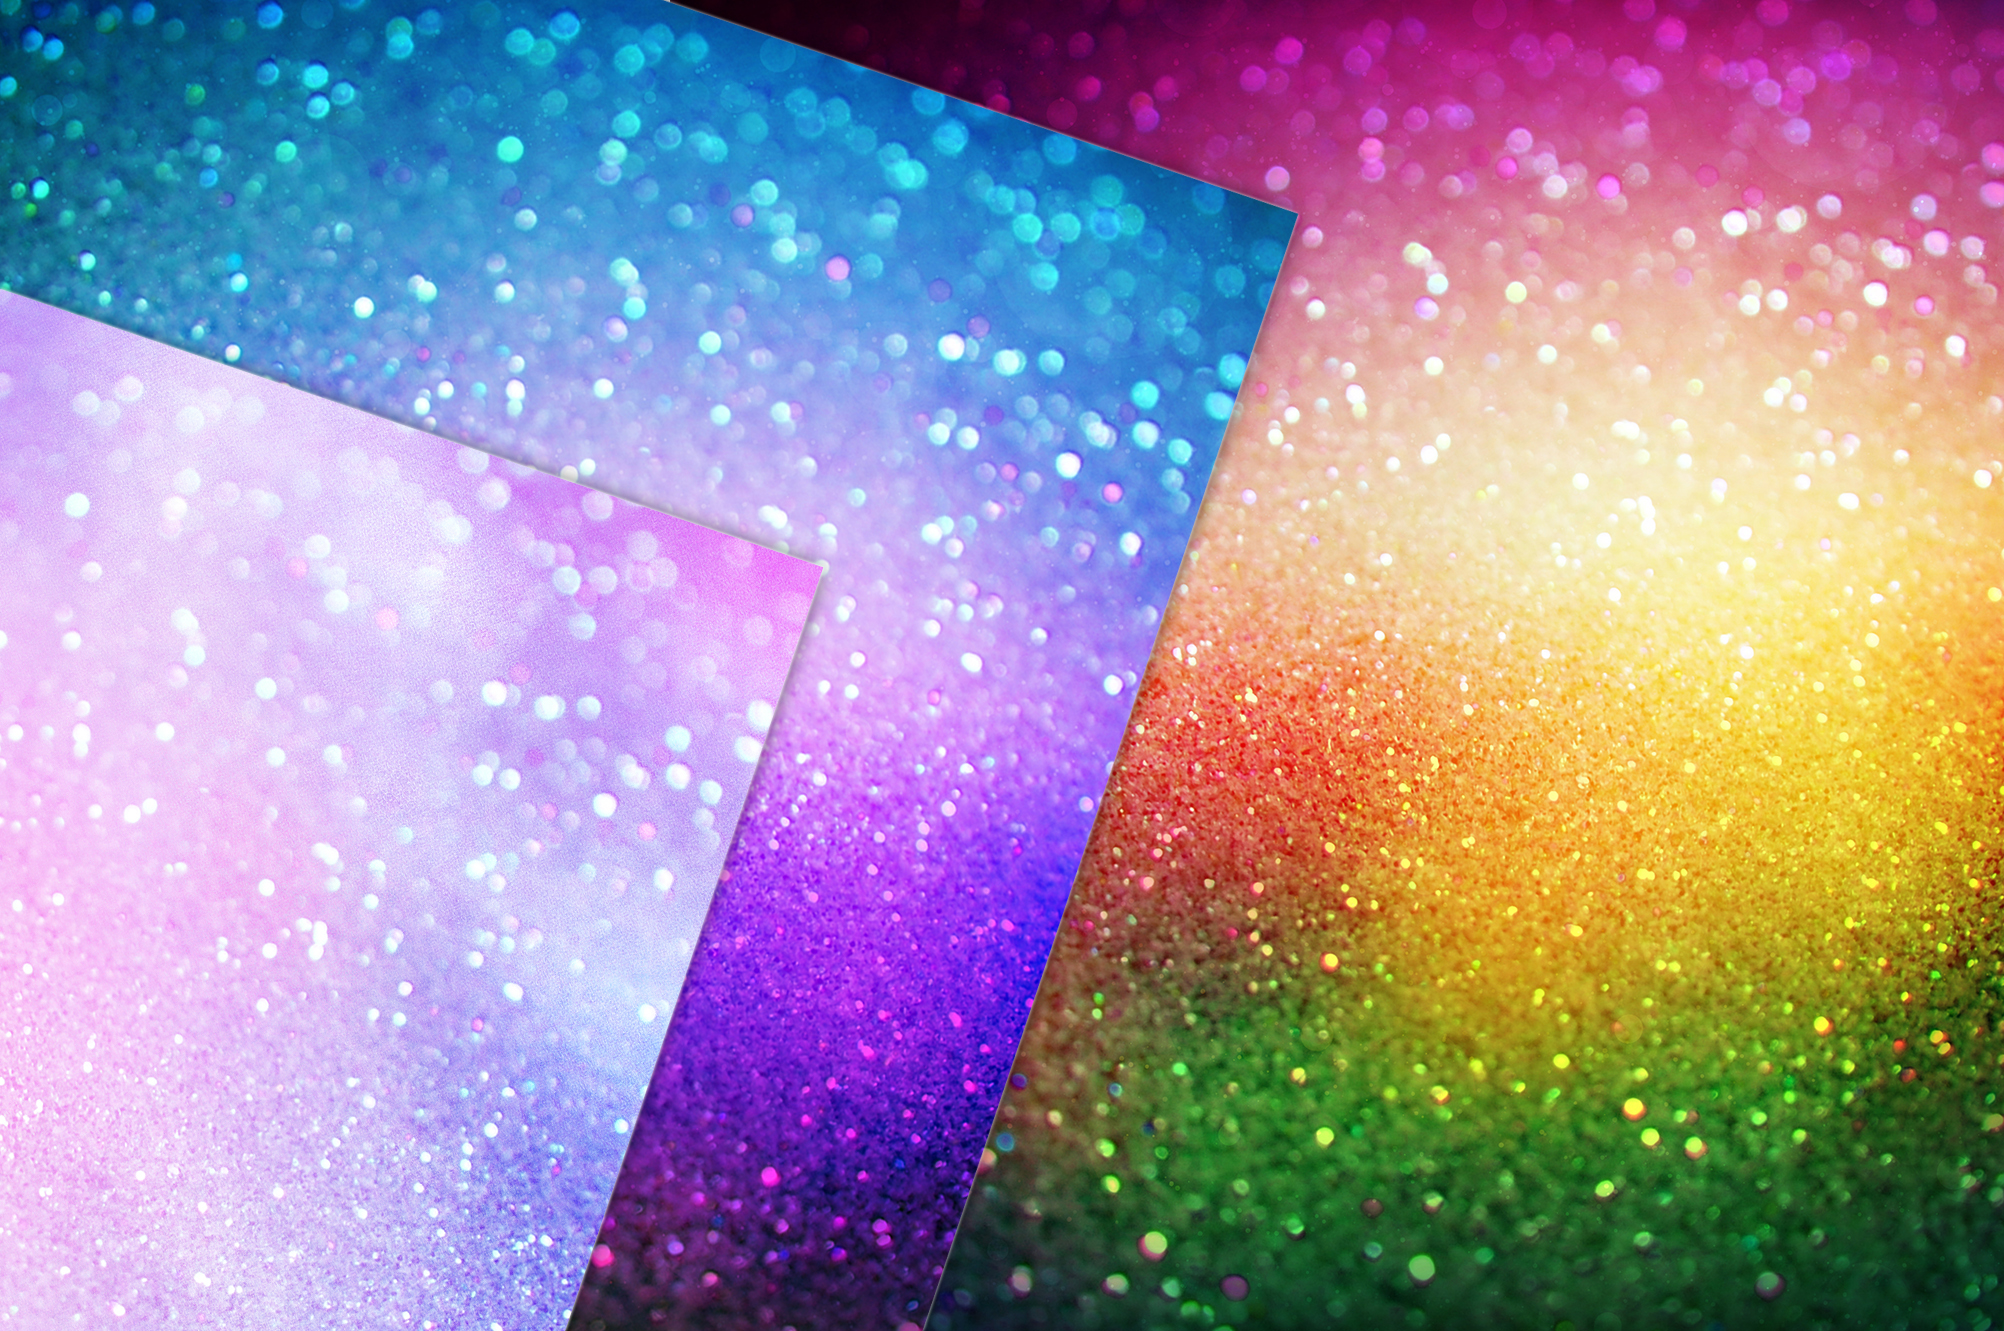 Iridescent Glitter and Foil Textures example image 14